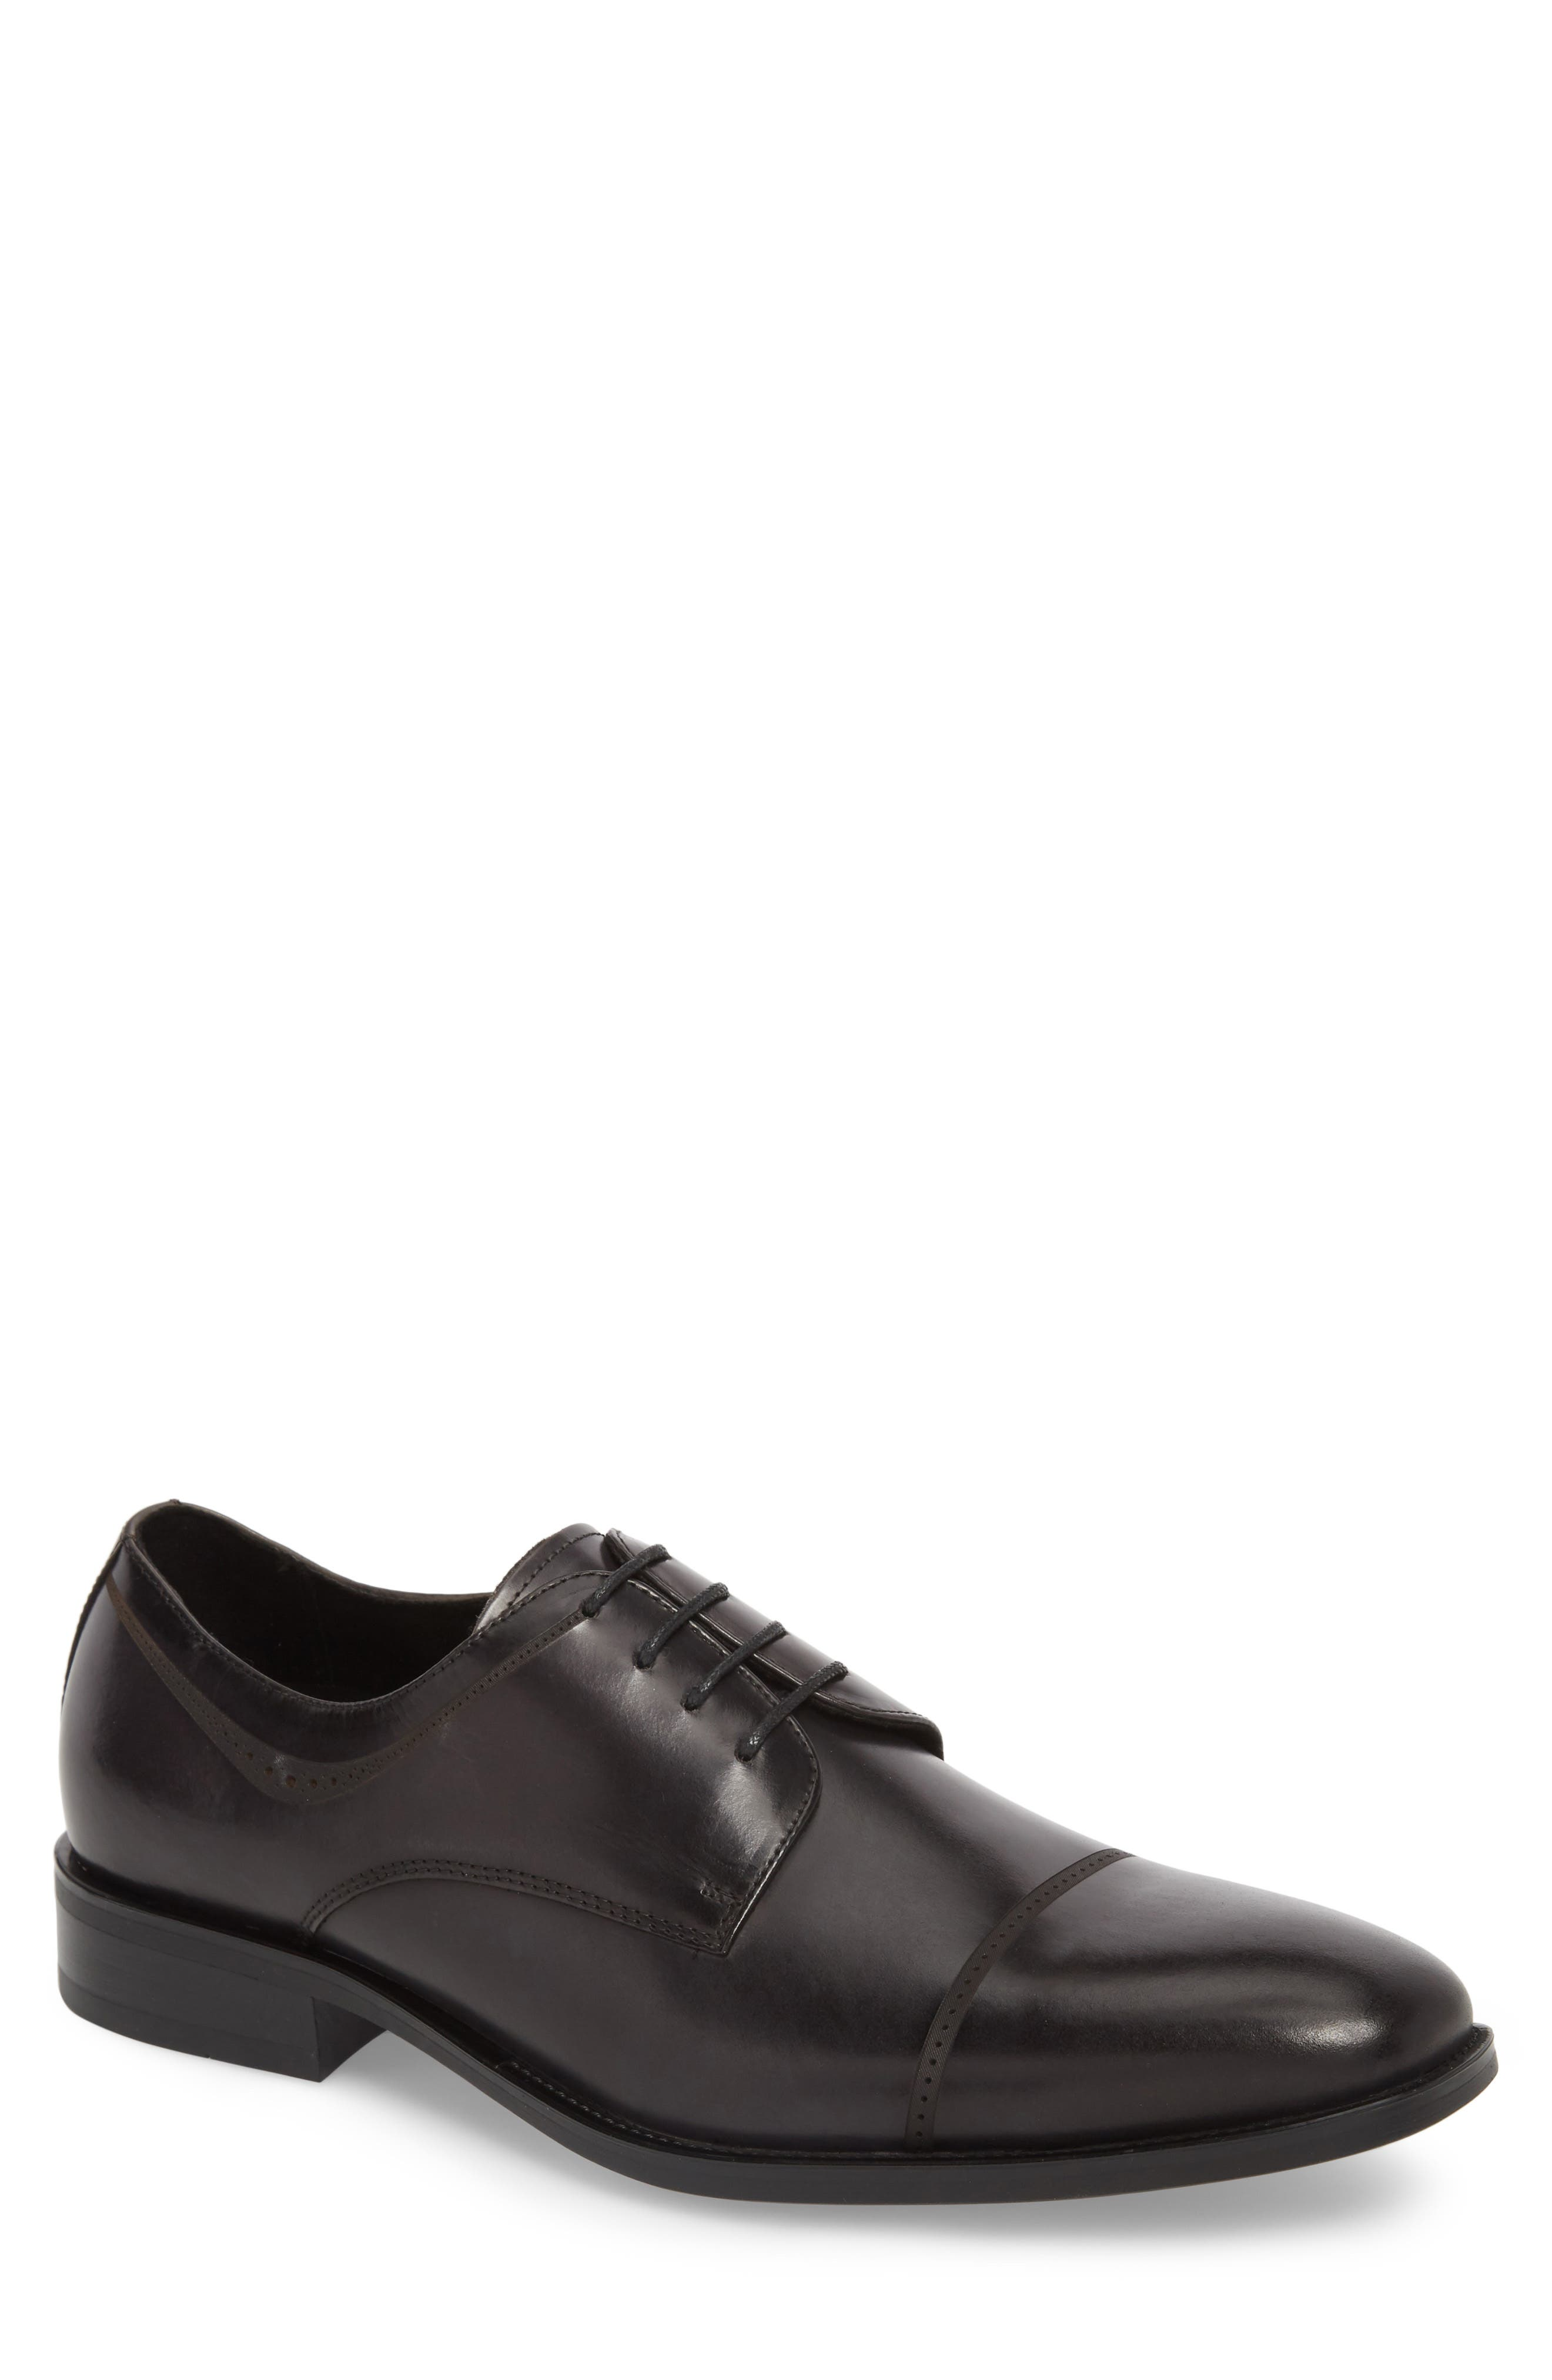 Leisure Time Cap Toe Derby,                         Main,                         color, DARK GREY LEATHER